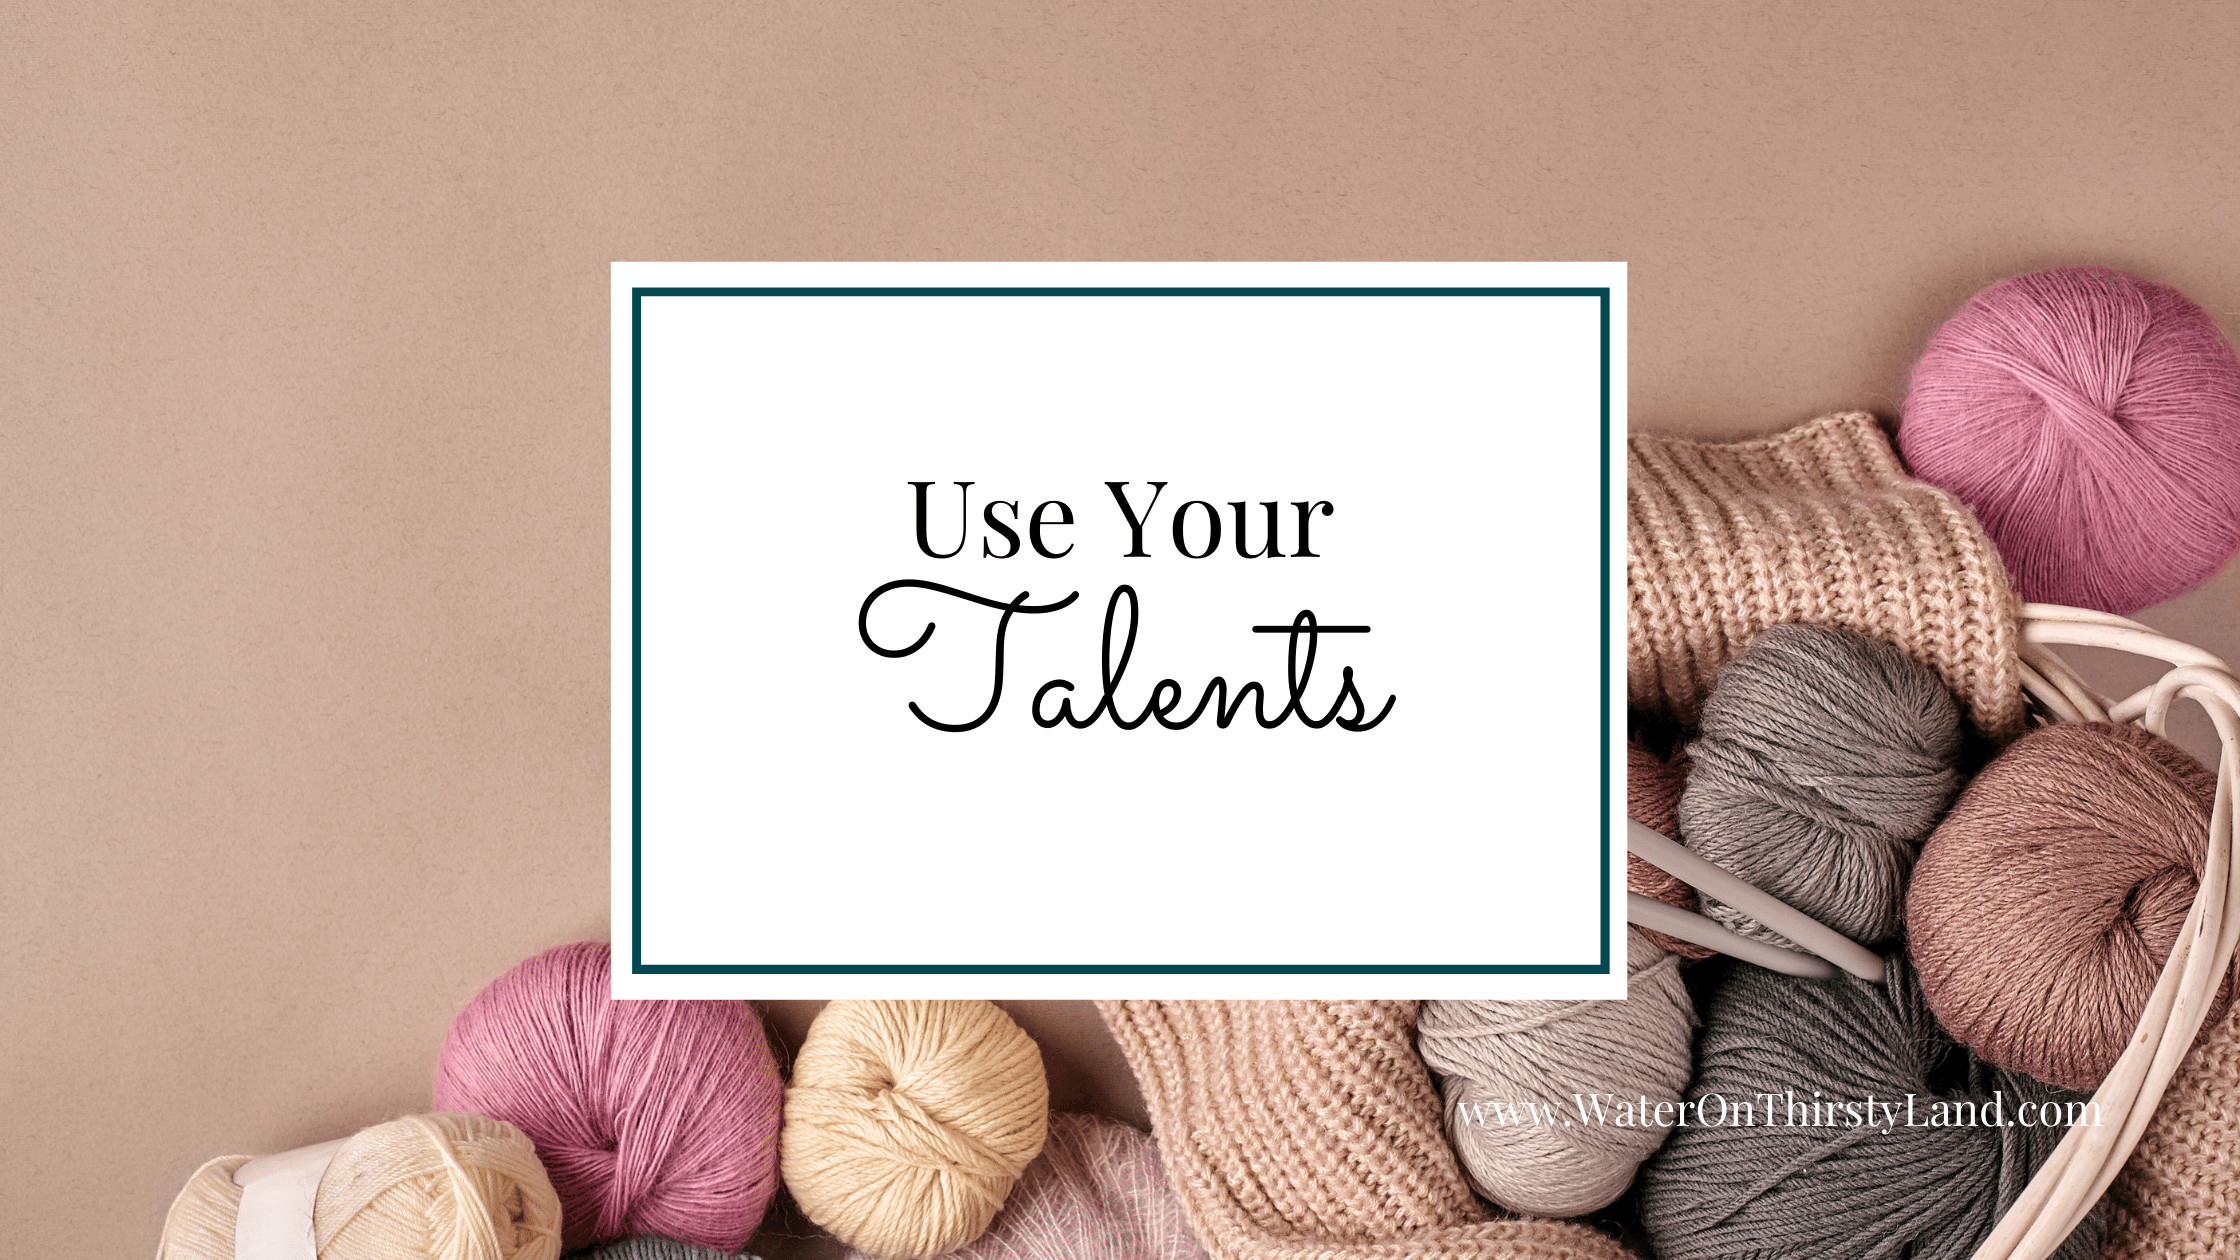 Use Your Talents